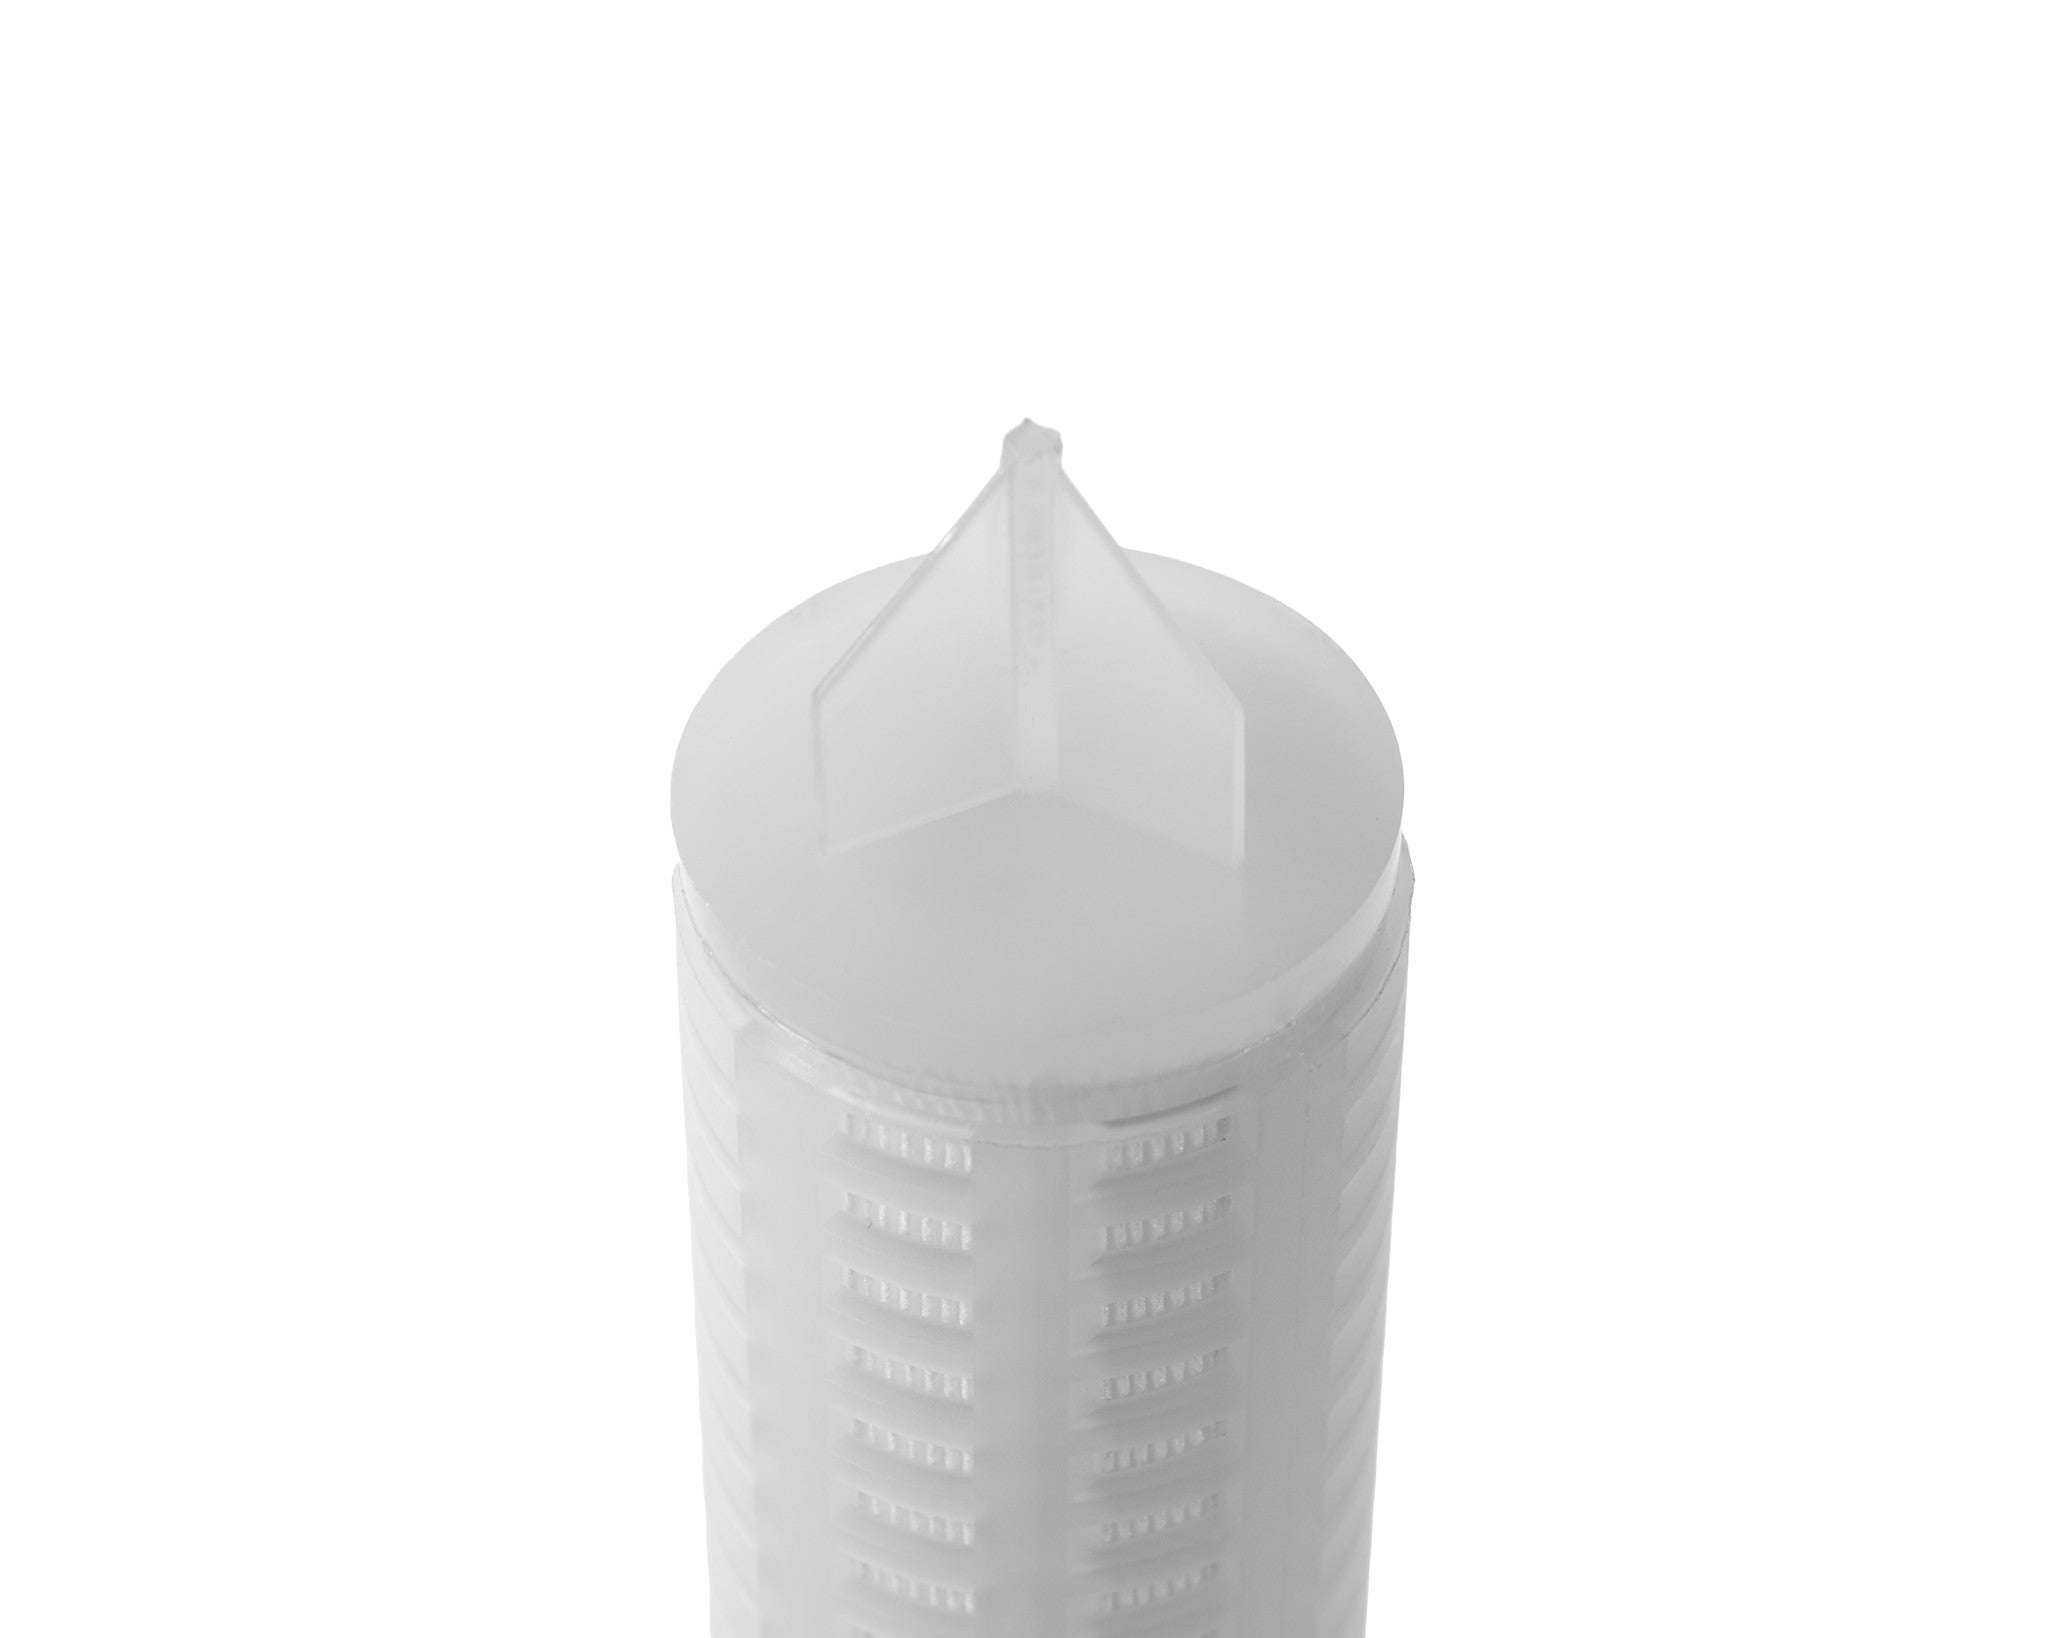 Filtersource.com PMC Series Filter Cartridge Pleated Filter Cartridge - Filtersource.com - 6